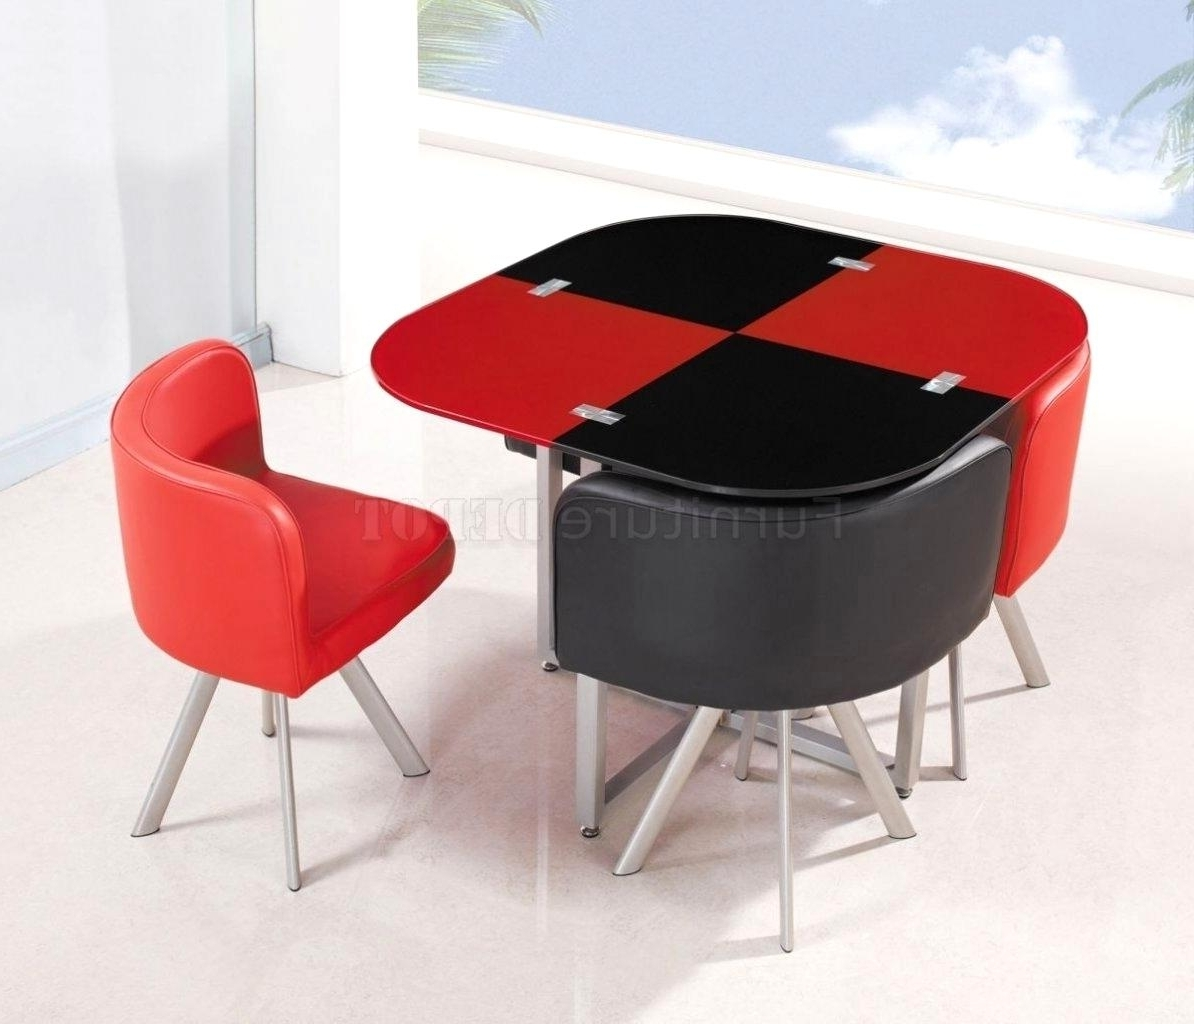 Red Dining Tables And Chairs With Best And Newest Lovely Red Dining Sets Stainless Steel Red Dining Table And Chairs (View 18 of 25)